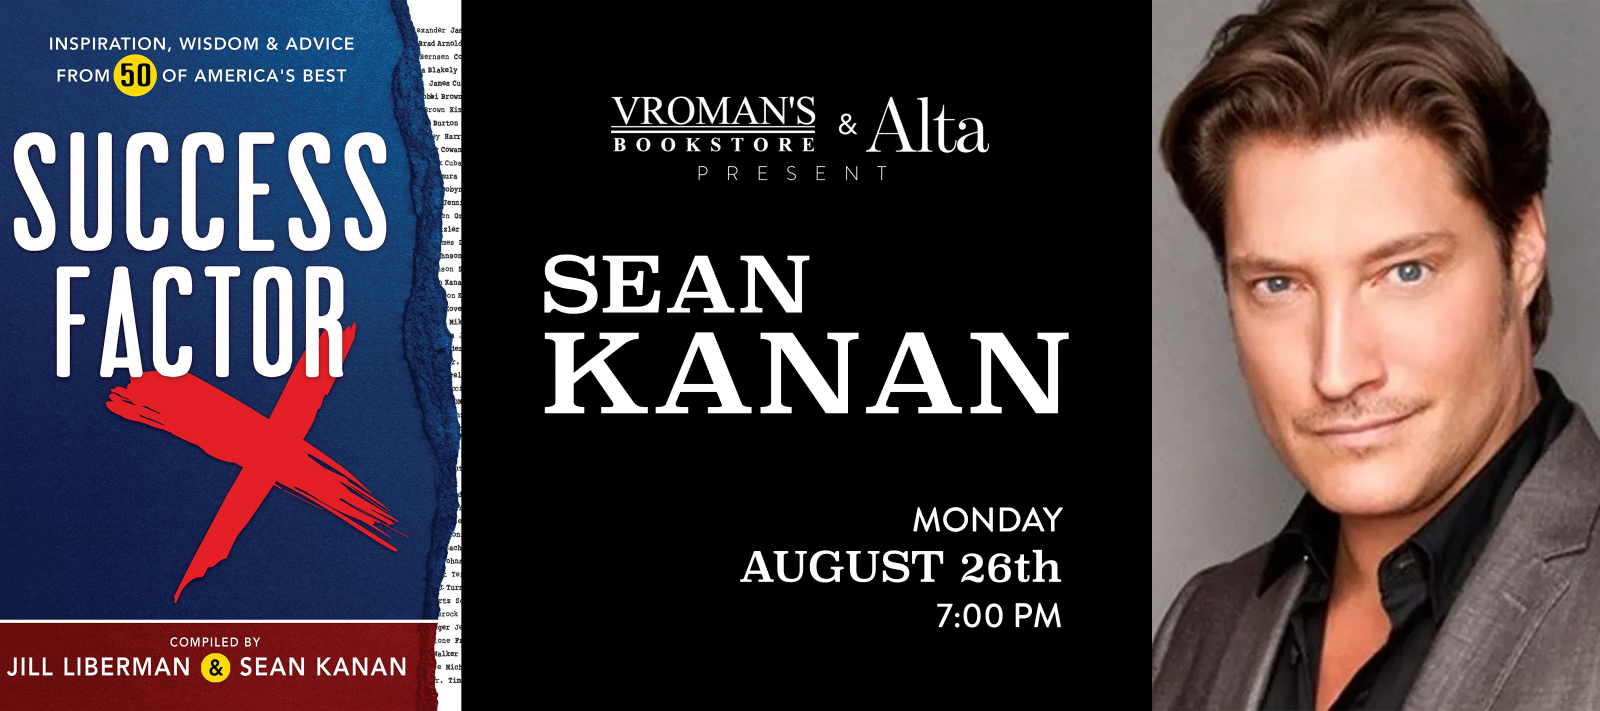 Sean Kanan book signing